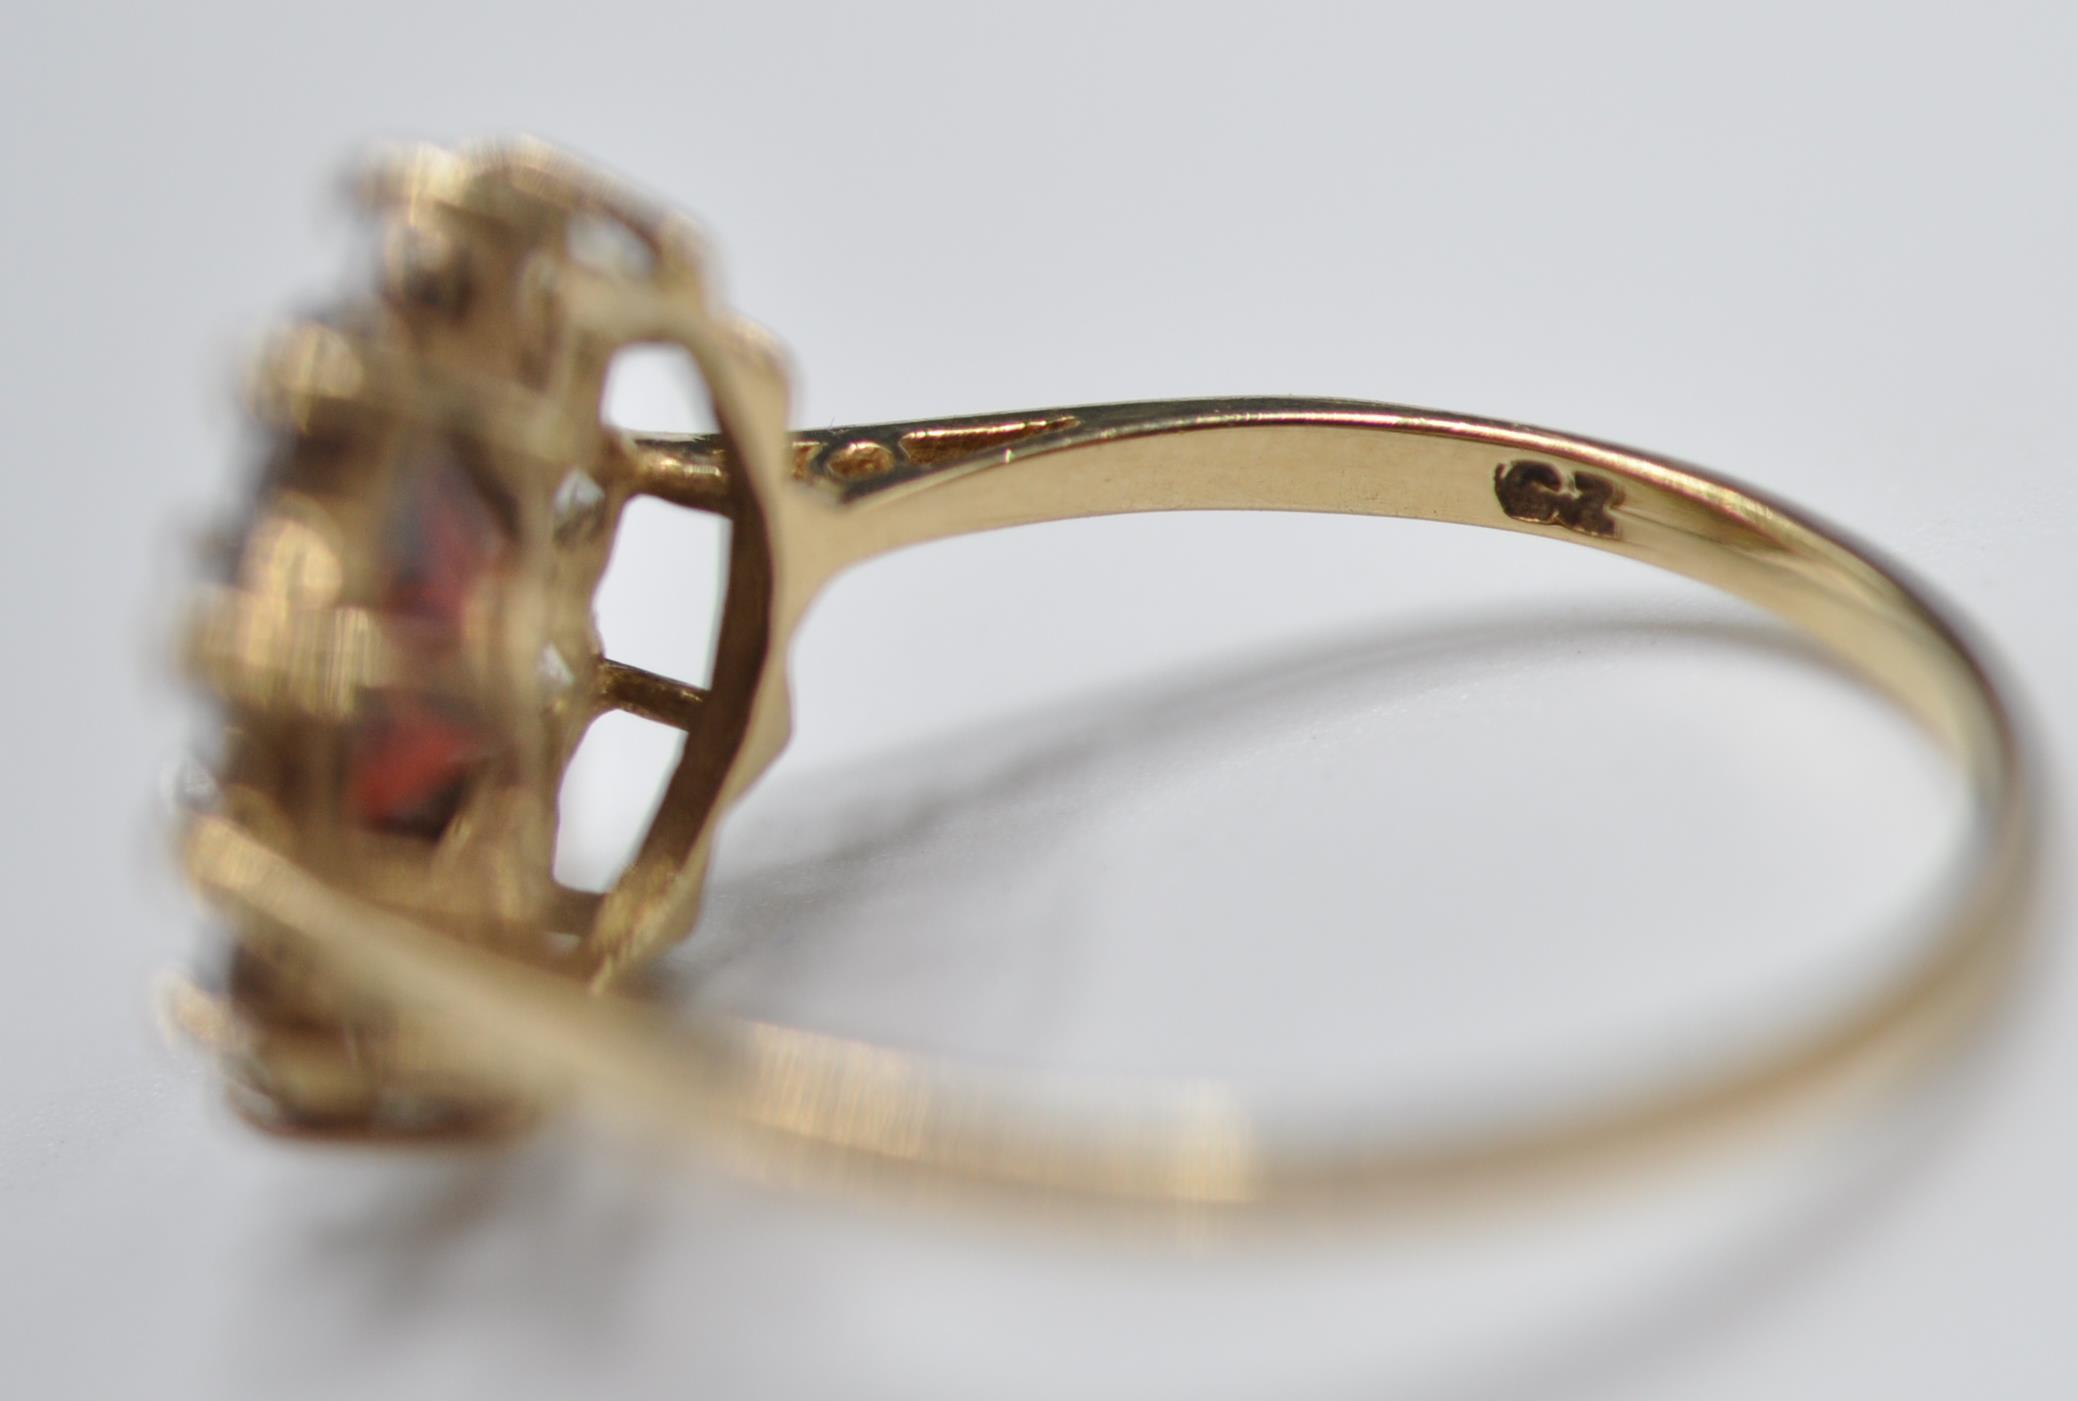 9CT GOLD RED AND WHITE STONE CLUSTER RING - Image 8 of 9